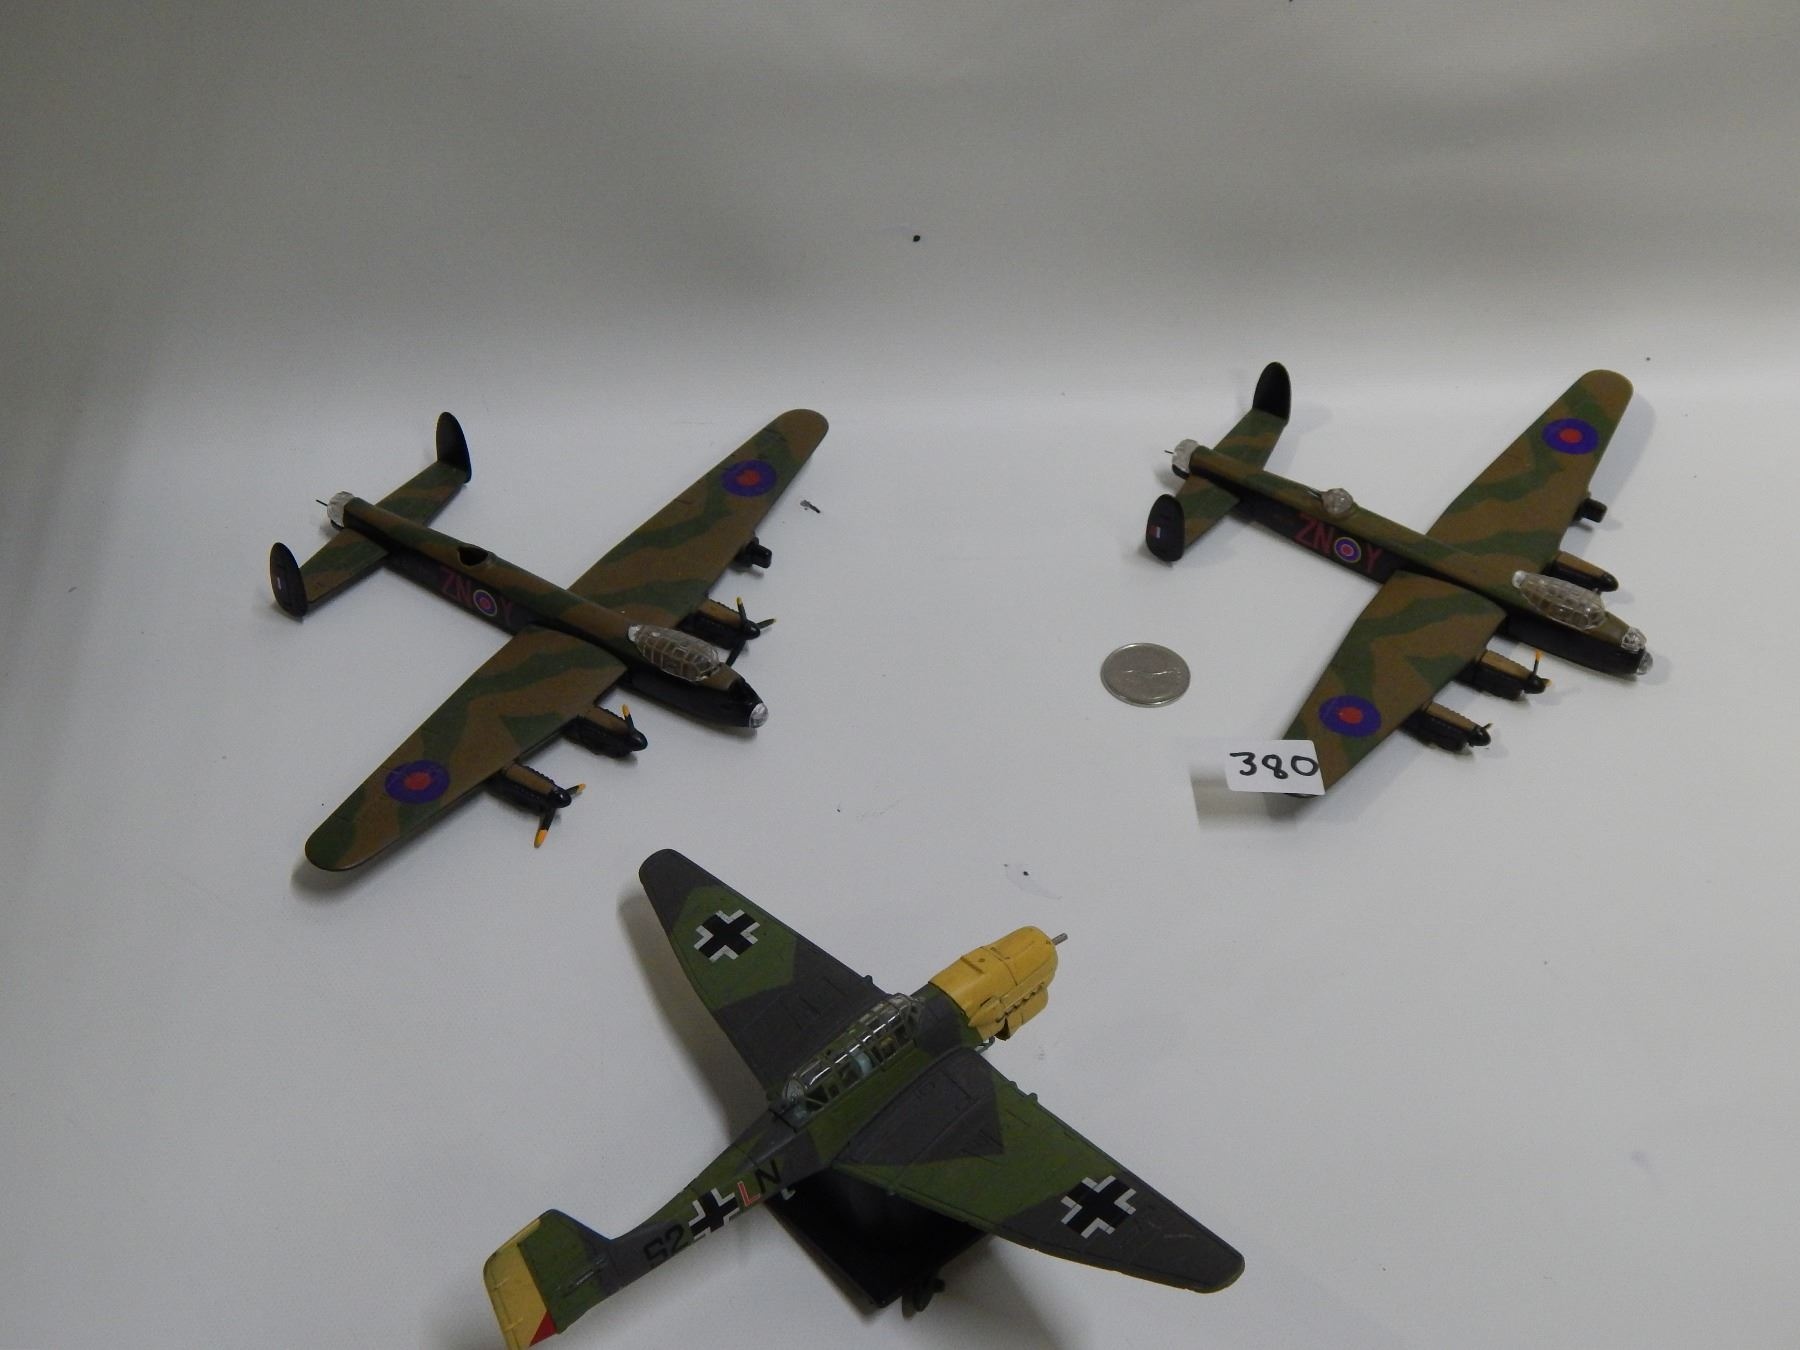 2 british bombers 1 german plane ww2 some parts missing